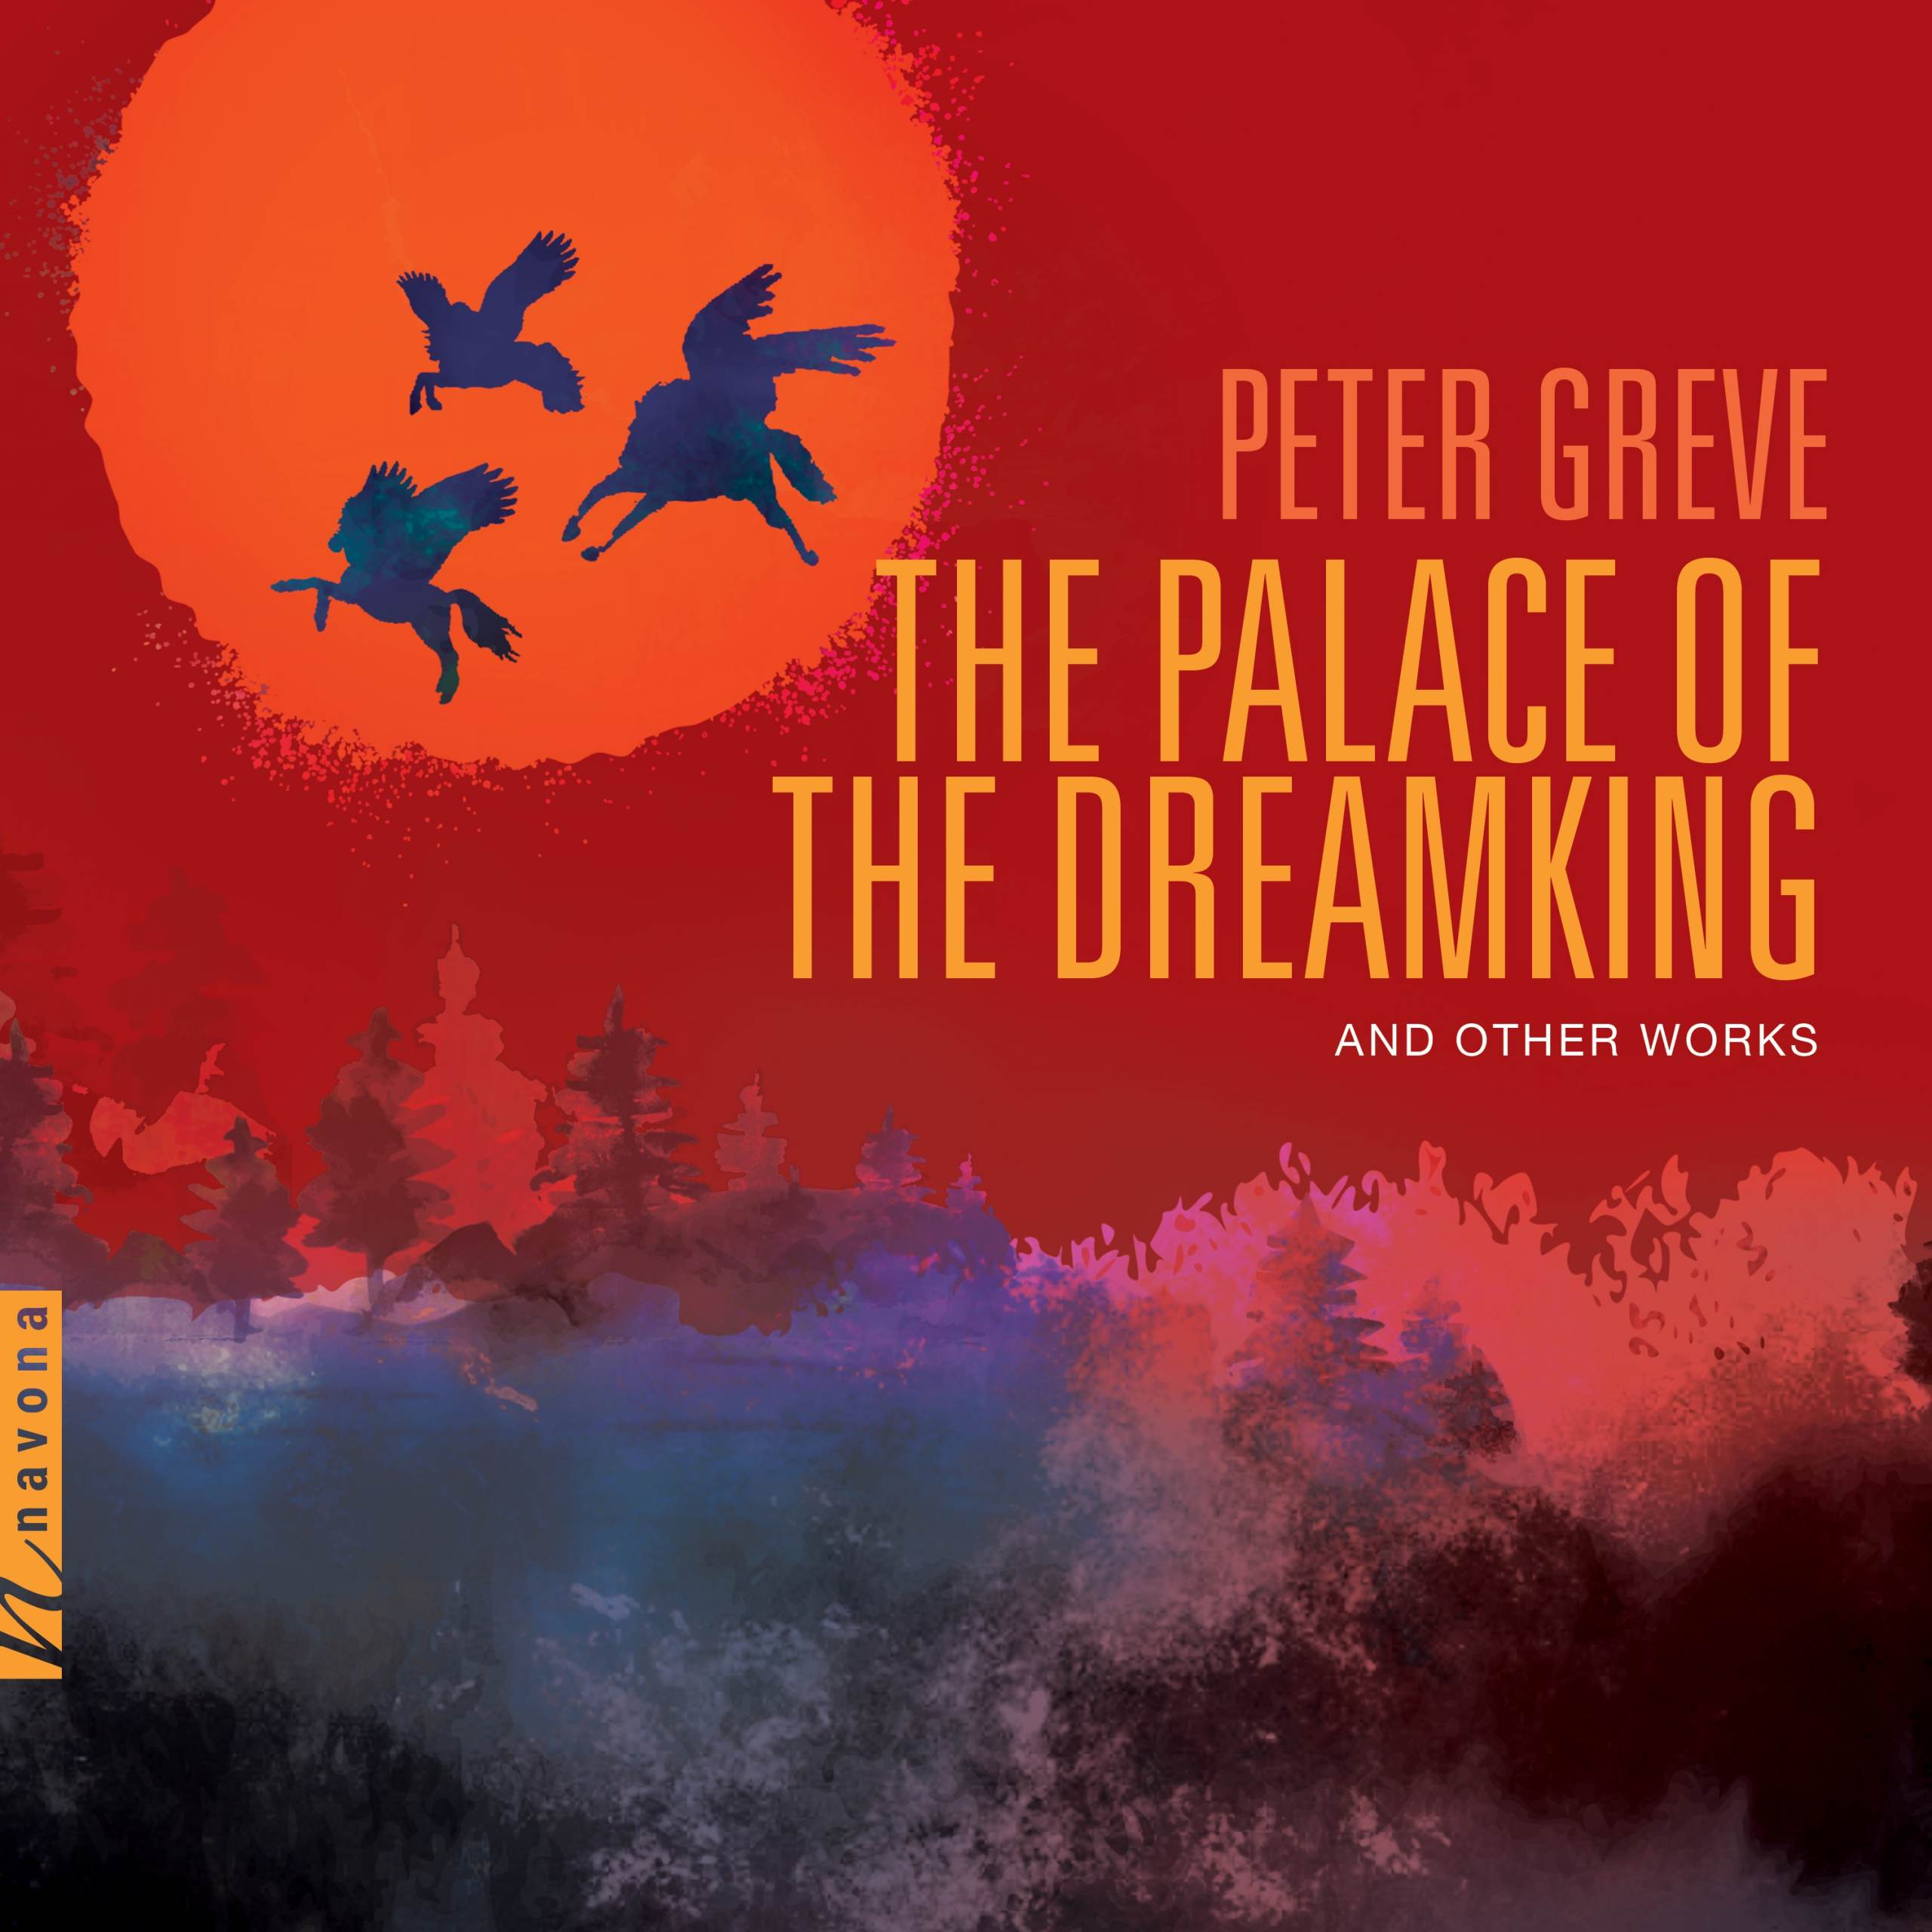 IN THE PALACE OF THE DREAMKING - album cover